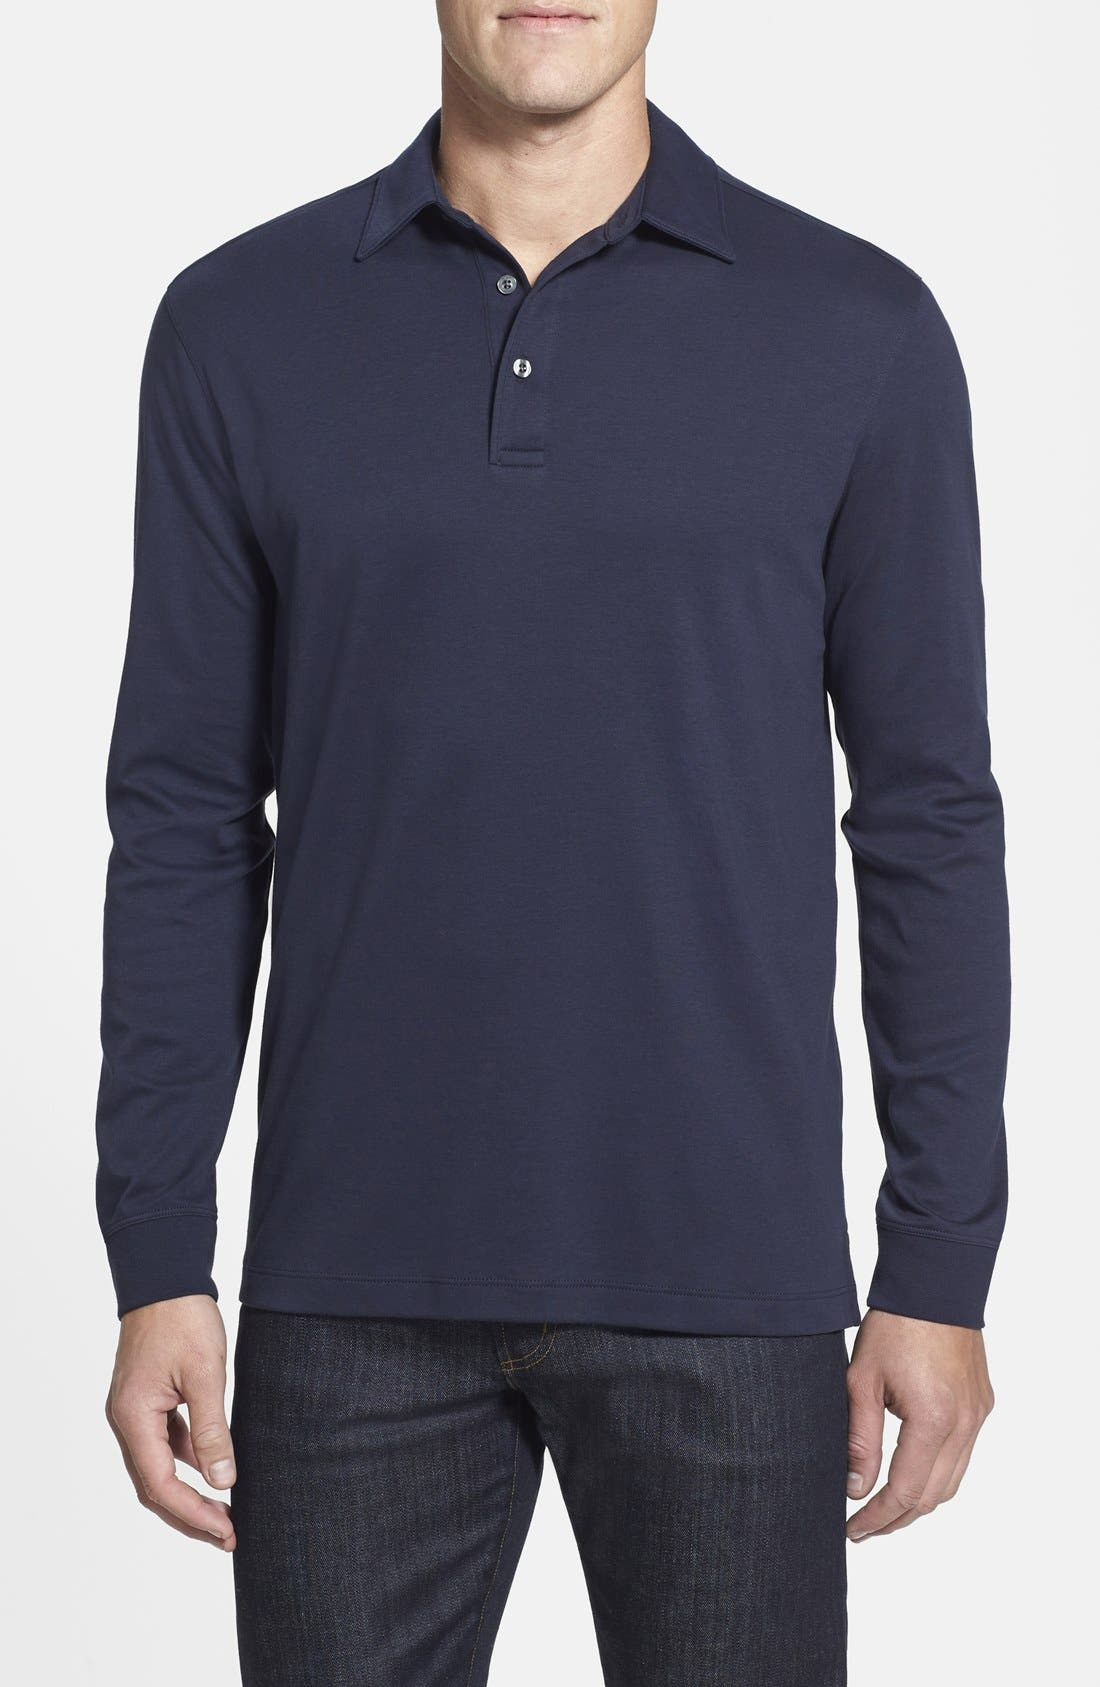 Cutter & Buck 'Belfair' Pima Cotton Polo (Big & Tall)